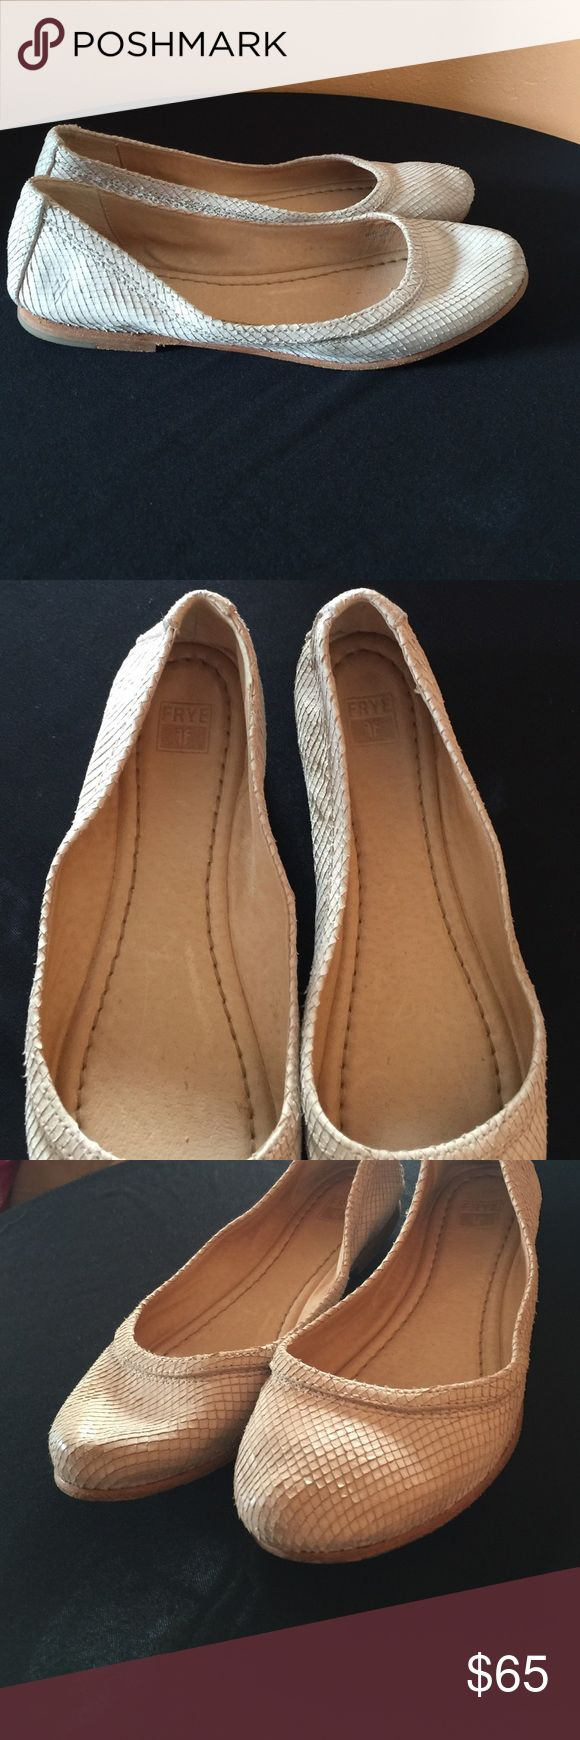 Frye Carson ballet flats Lizard leather print cream color BEAUTIFUL LIKE NEW Frye Shoes Flats & Loafers